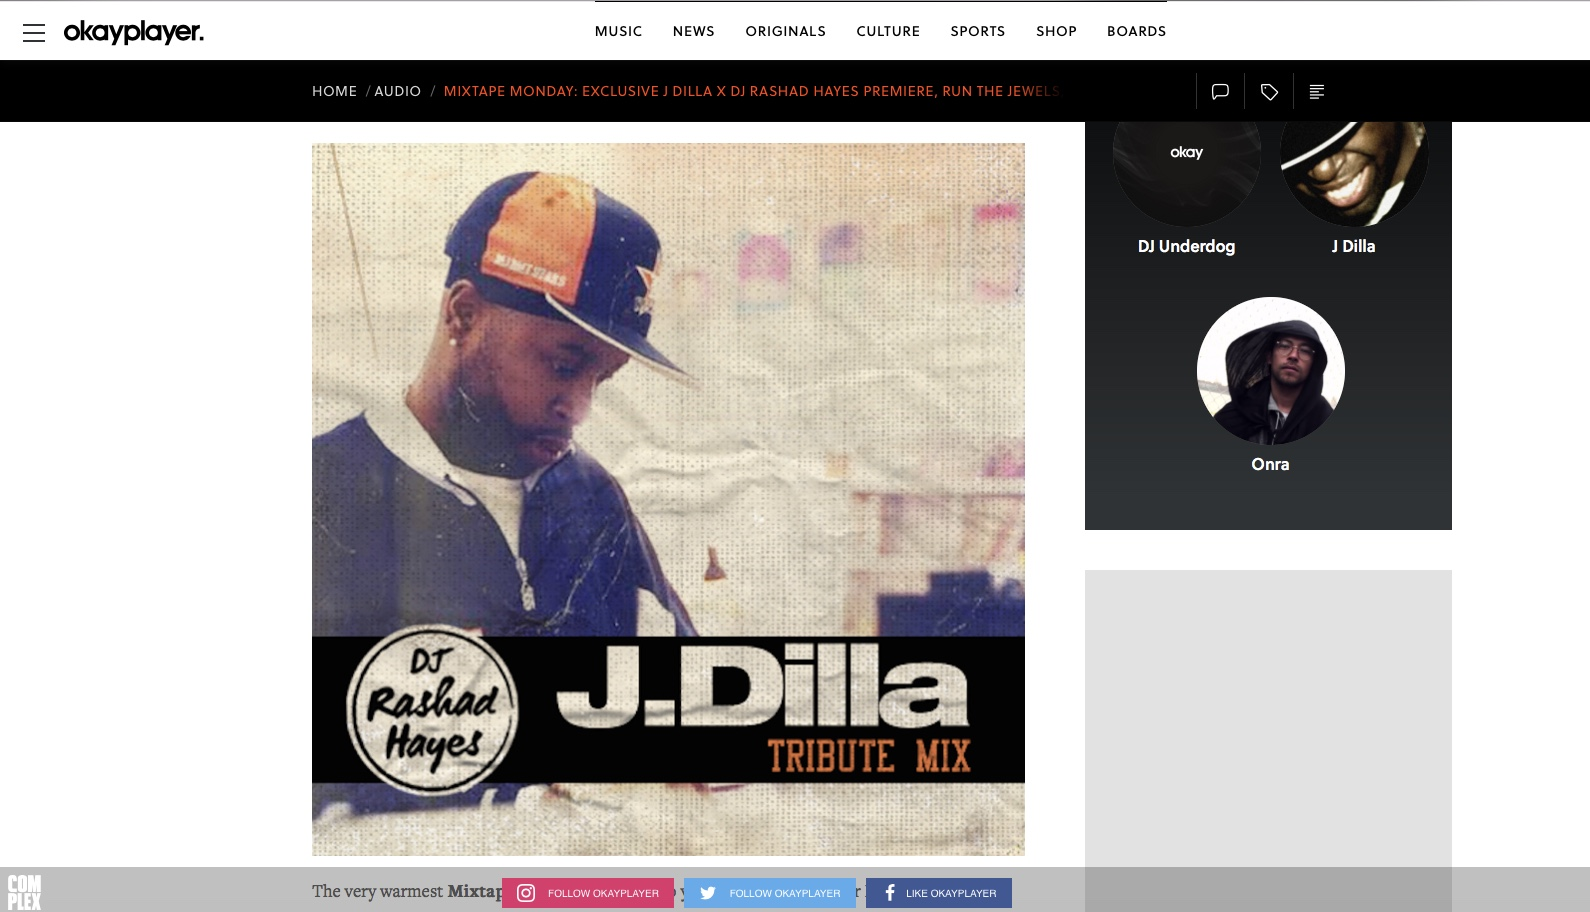 OkayPlayer Feature - I partnered with OkayPlayer to release a tribute mix honoring the late great J Dilla. This mix was featured on many Best of the Year mixes.